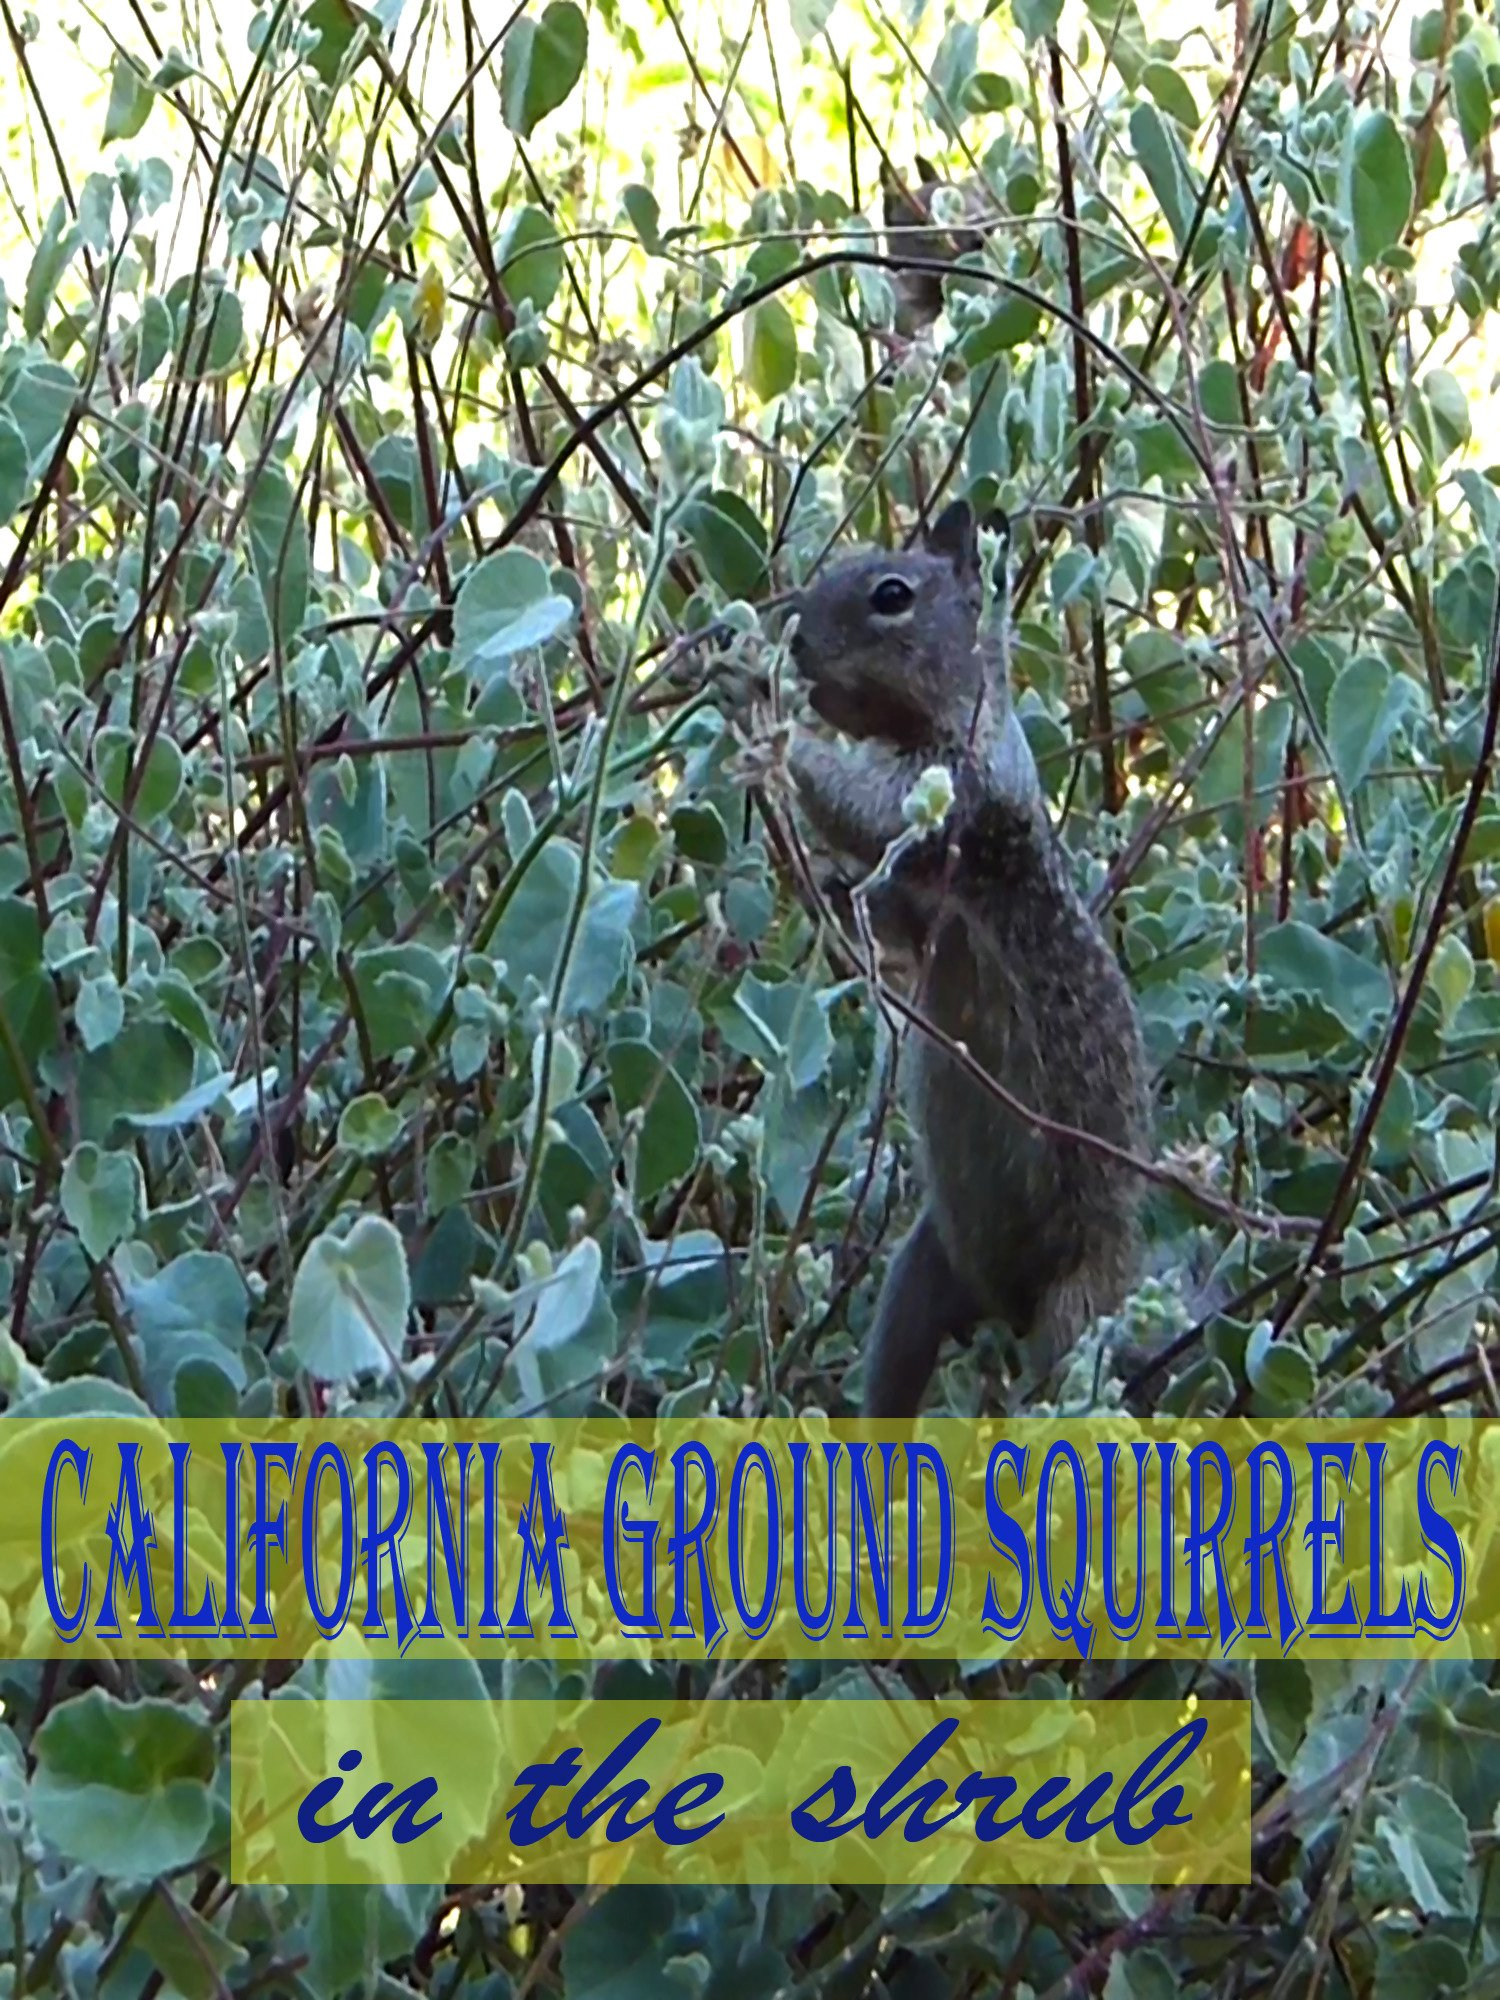 Clip: California Ground Squirrels in the shrub on Amazon Prime Instant Video UK